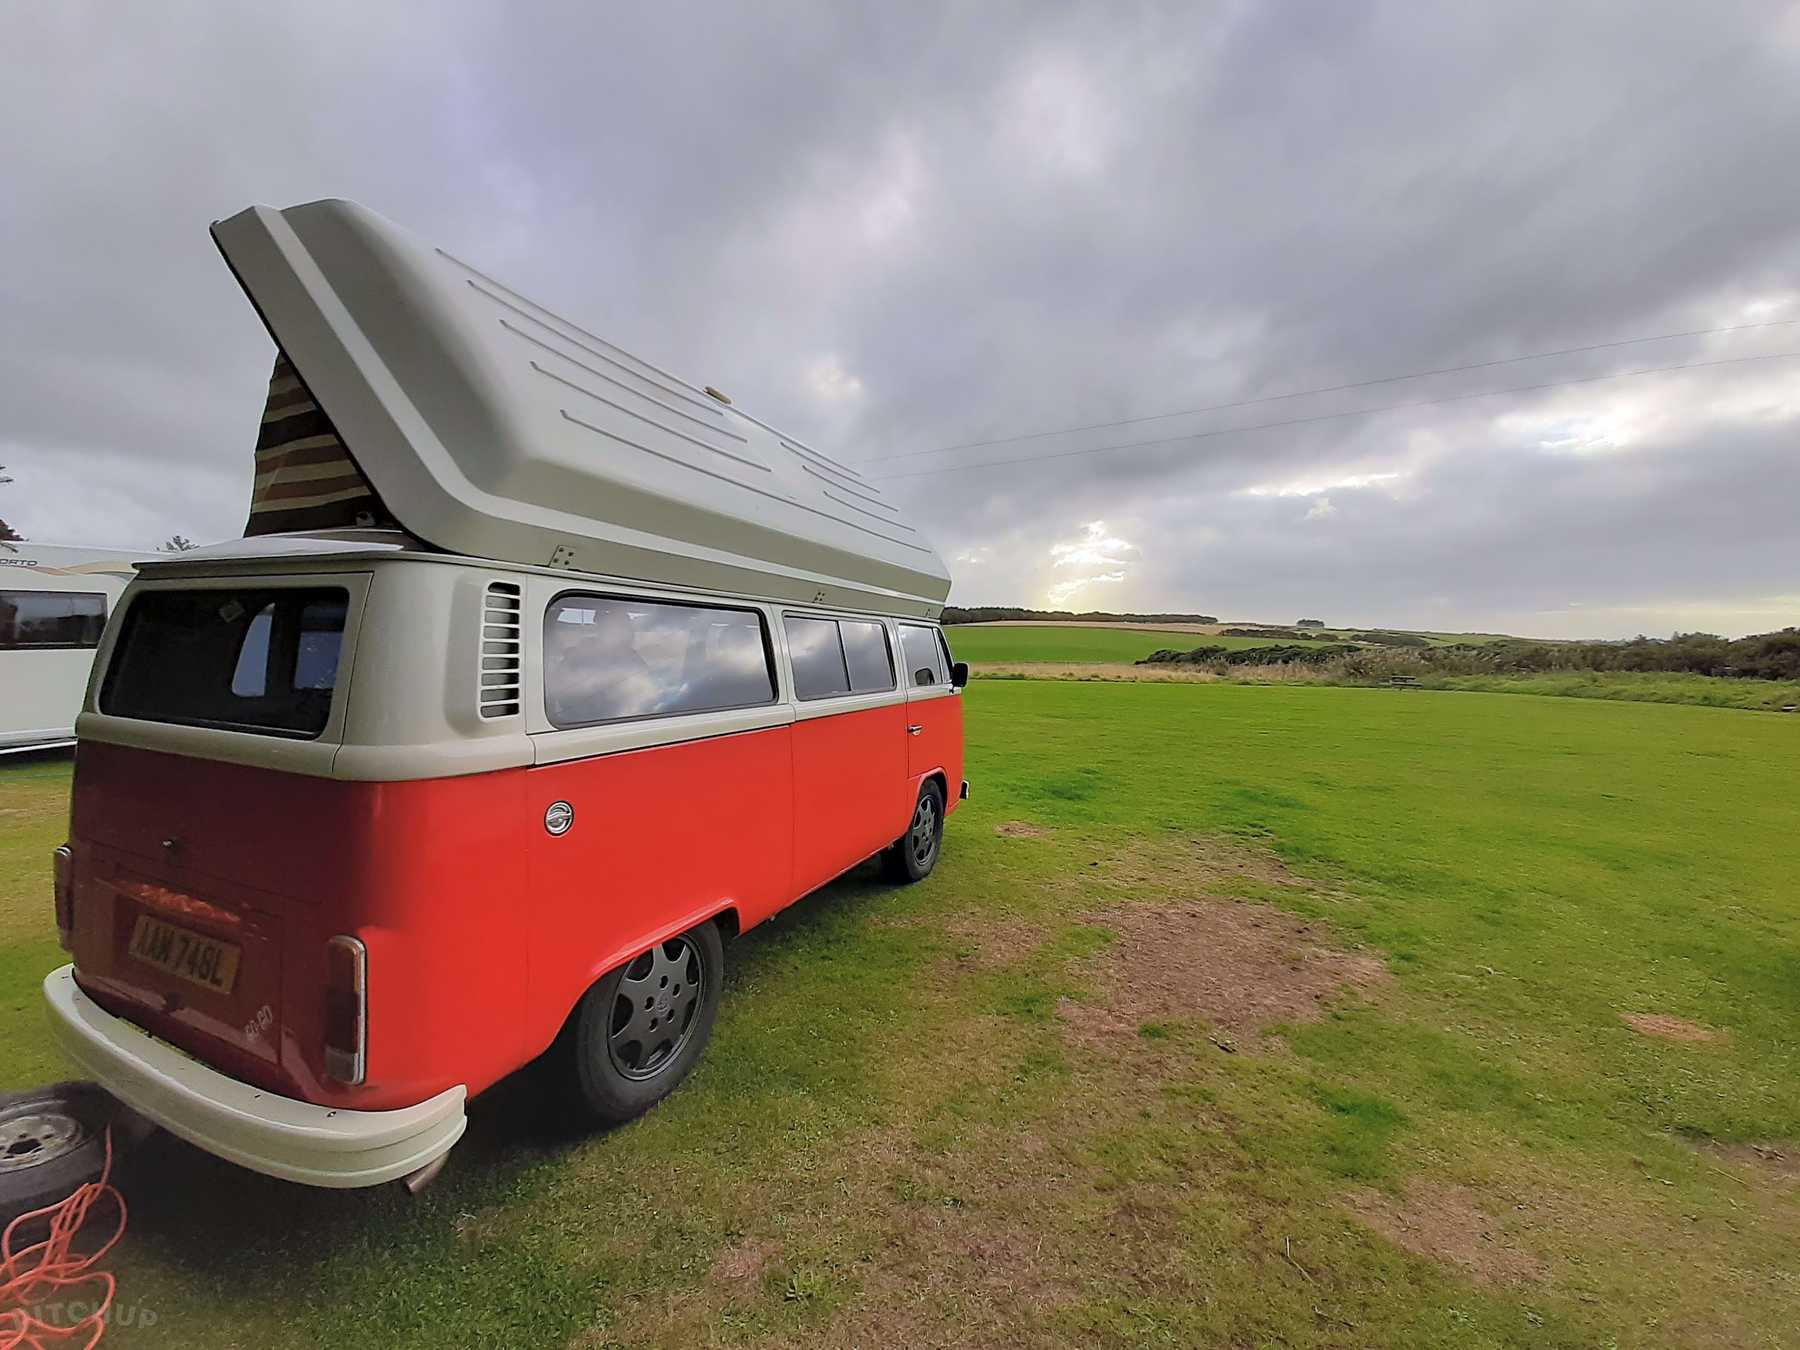 red vw transporter parked at East Balthangien campsite